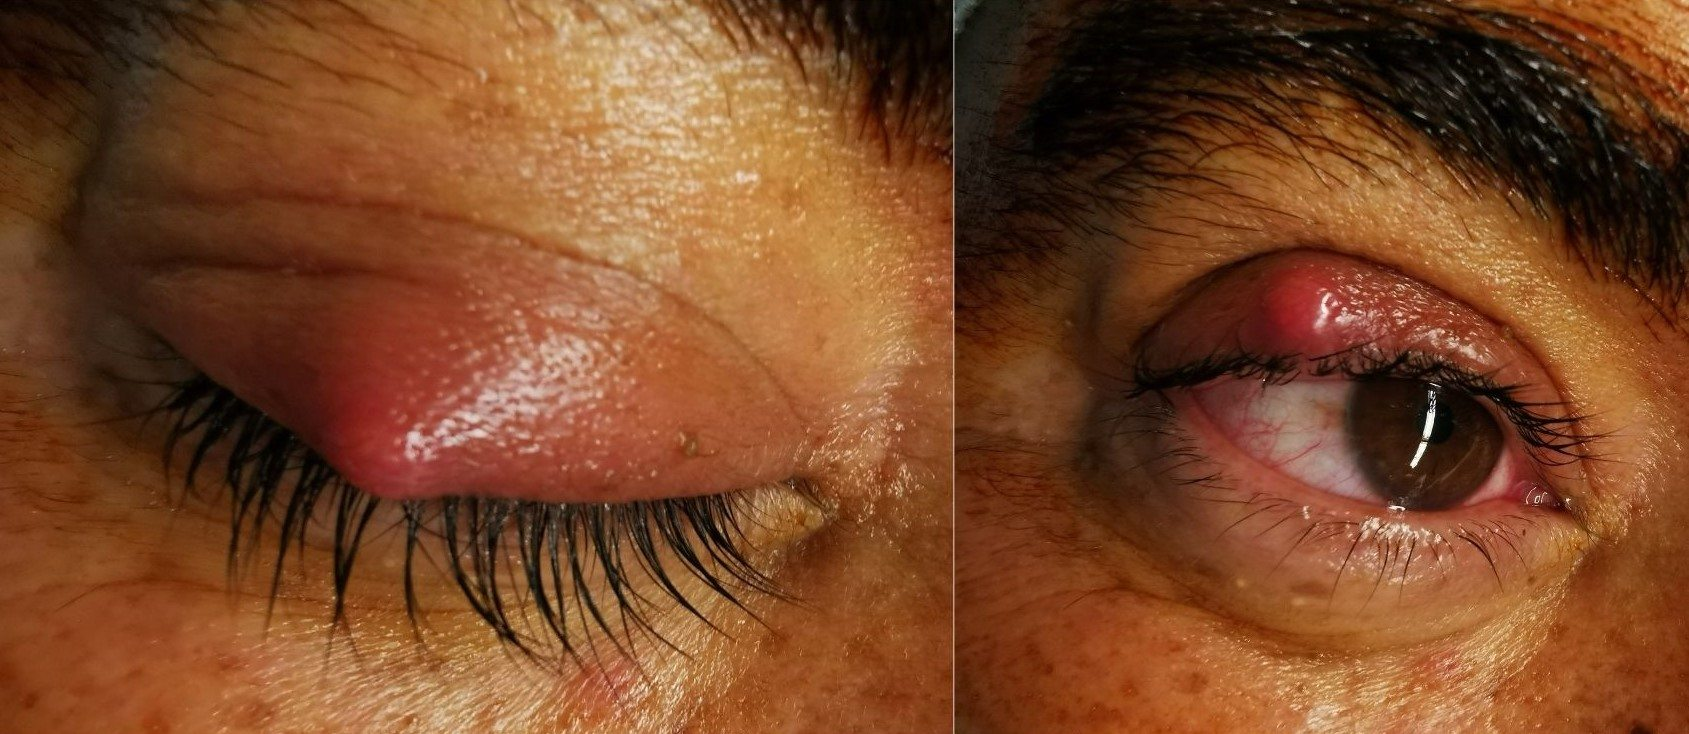 Stye. What is it and how is it treated?